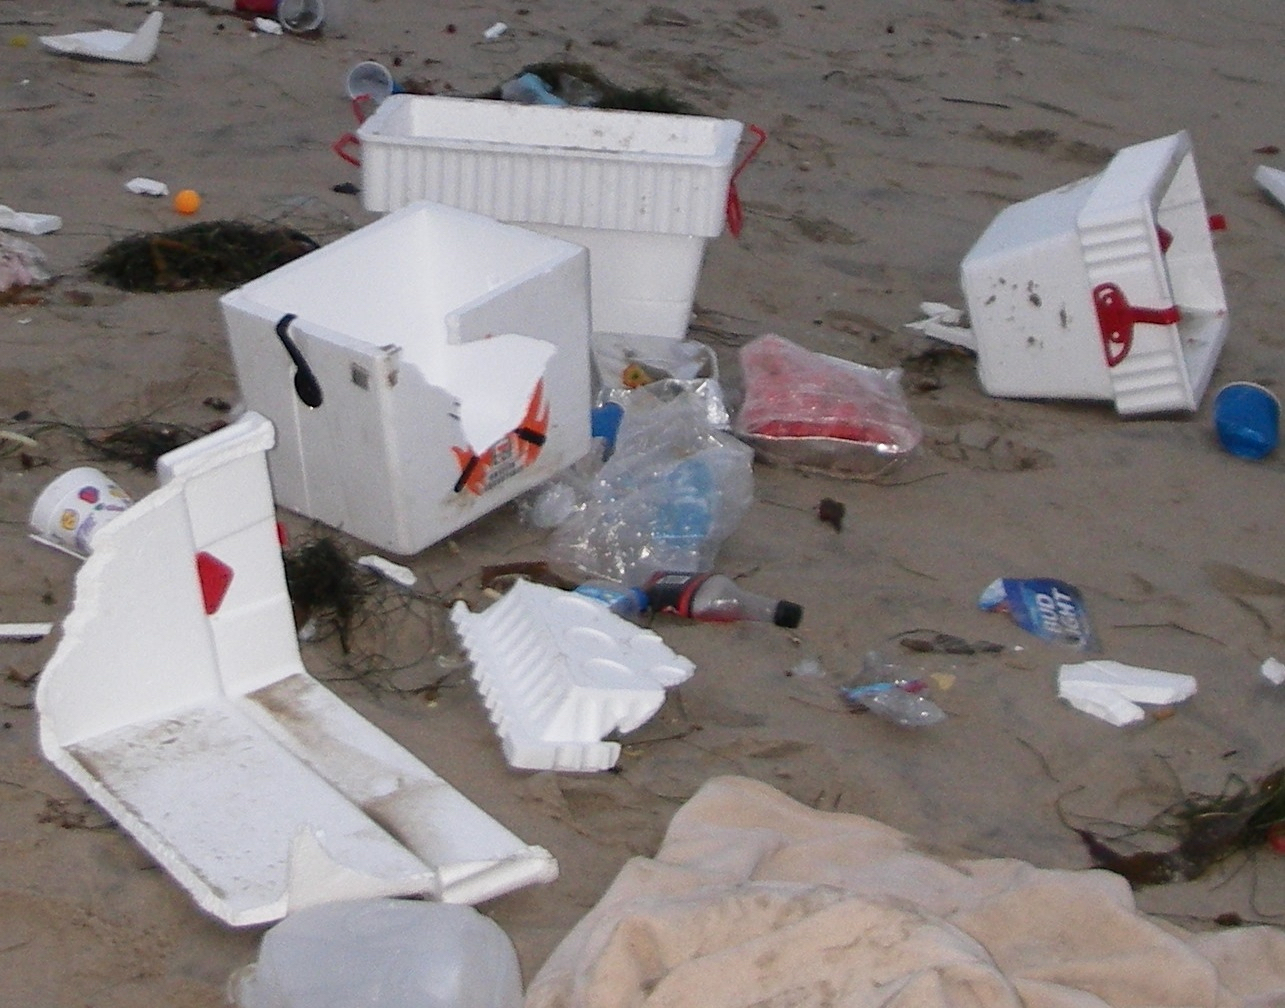 Enforce Hollywood Beach Single-Use Plastic Ordinance